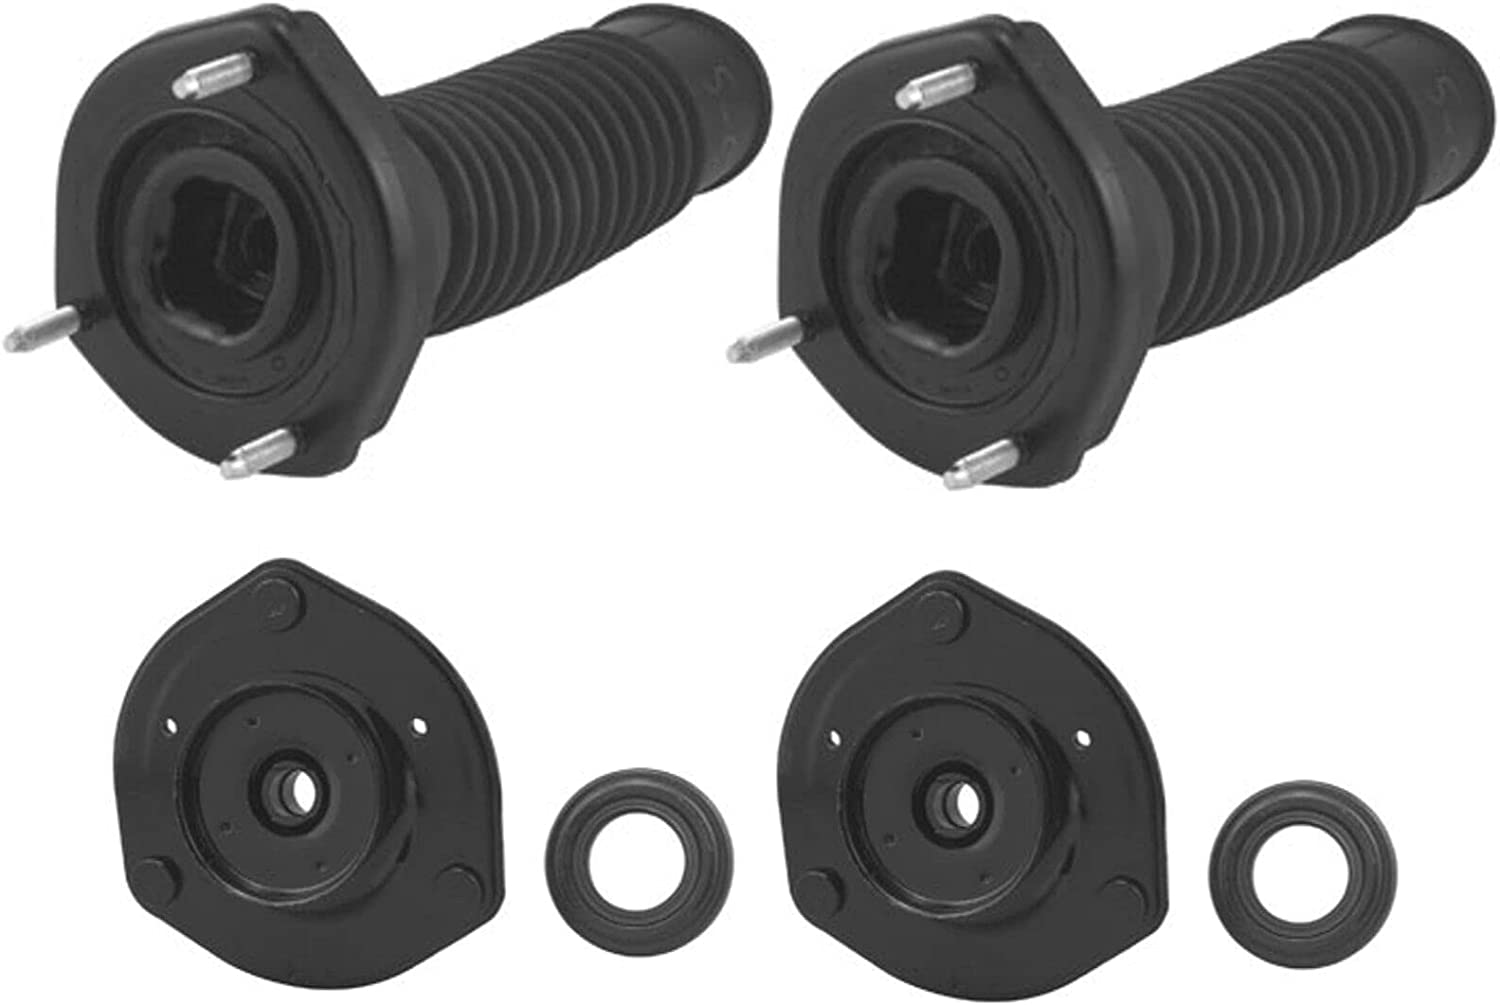 Replacement Front and Rear Kit Mount Suspension Strut Max 77% OFF Selling and selling